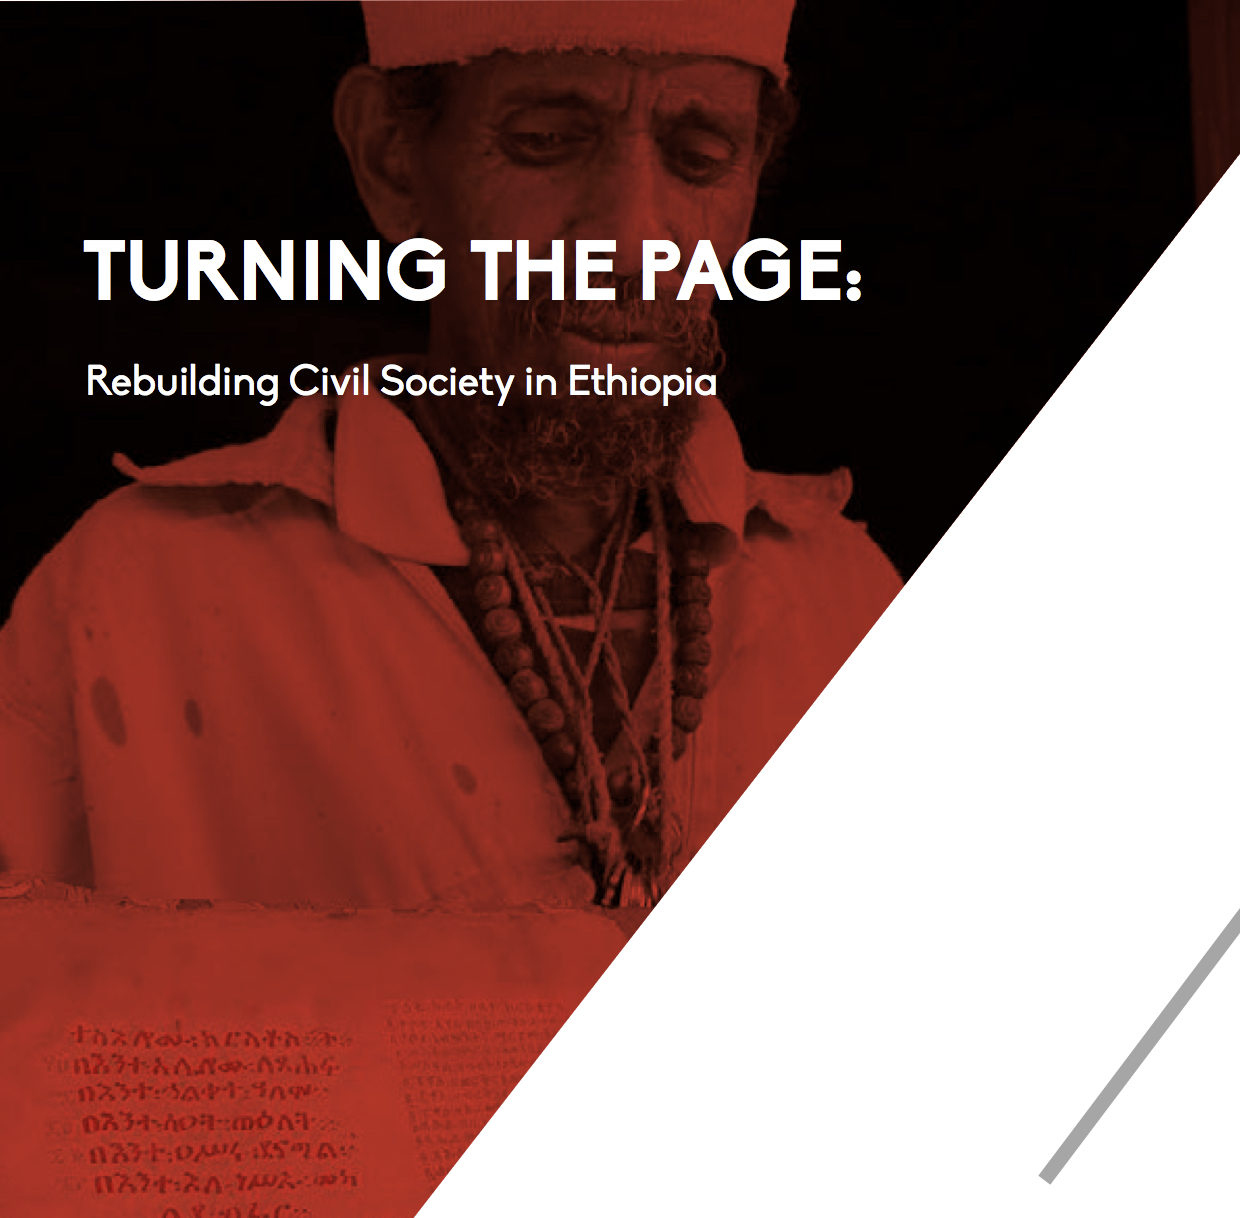 Turning the Page: Rebuilding Civil Society in Ethiopia